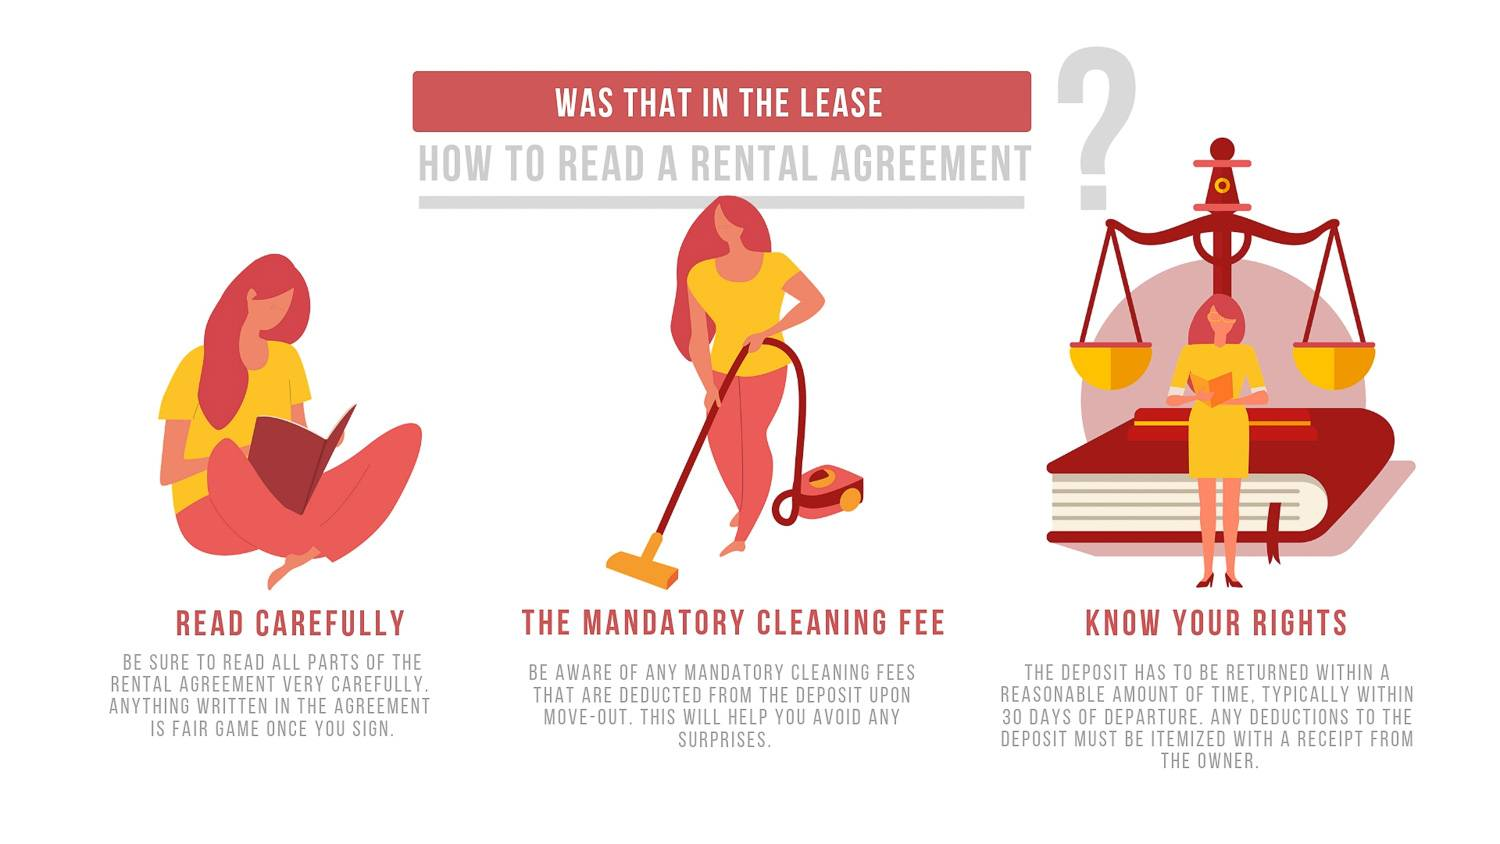 New York Habitat infographic describing tips for reading a rental agreement, including to read all parts carefully, pay attention to mandatory fees, and understanding deductions to the deposit.